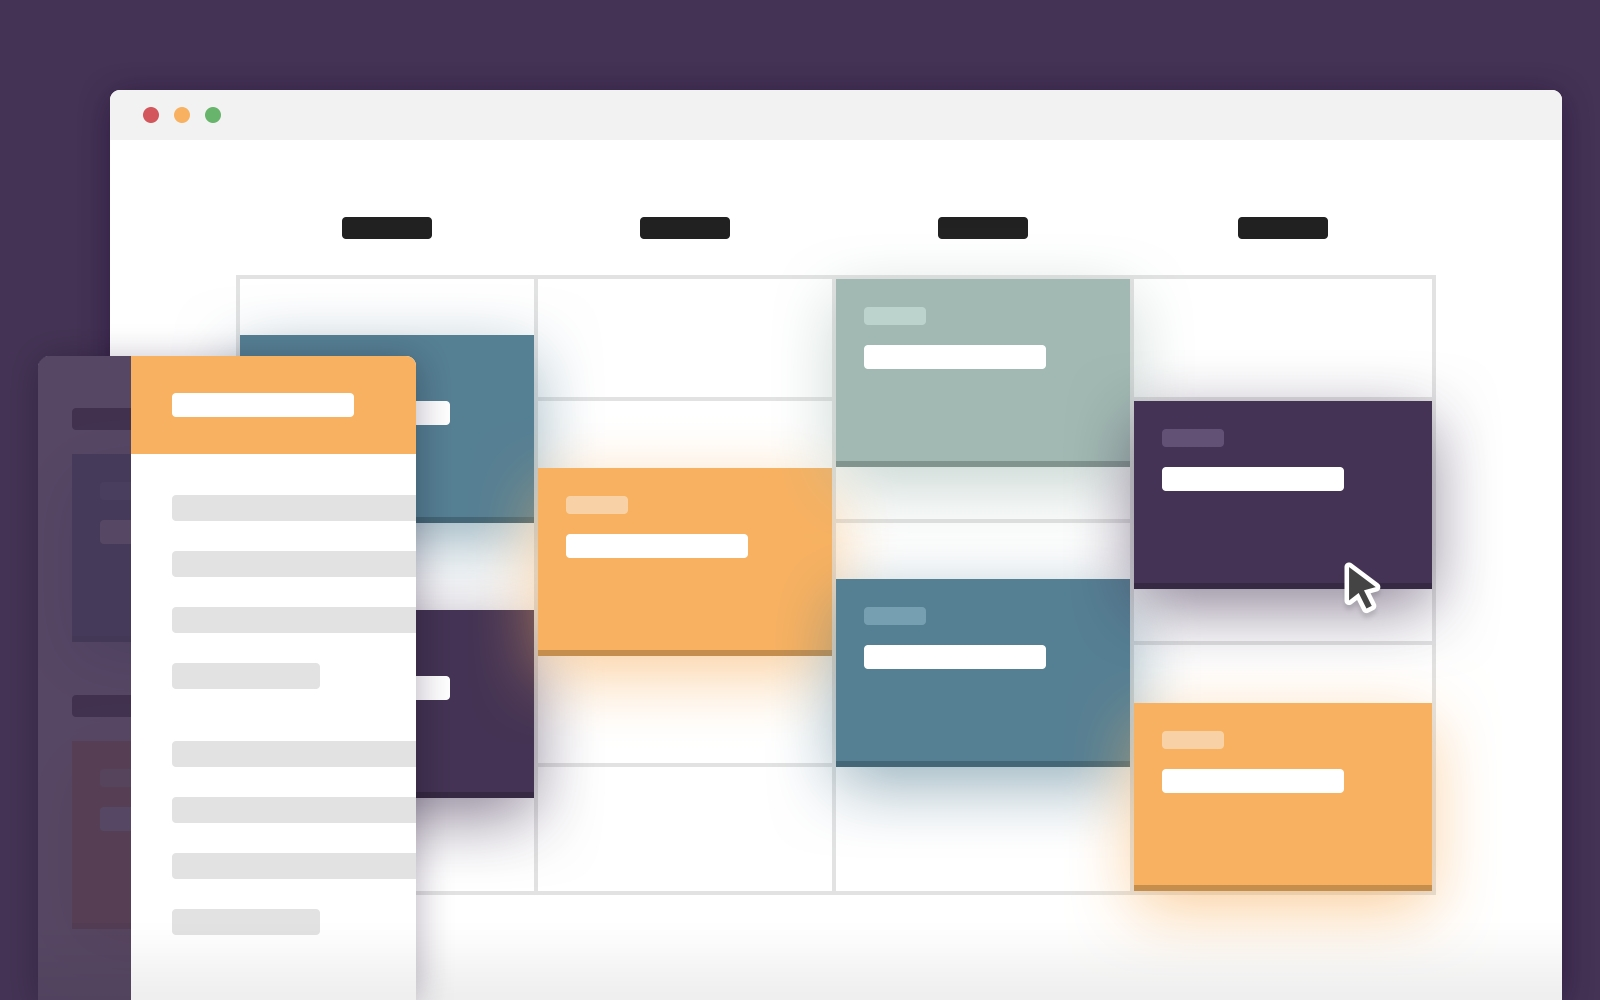 Schedule Template In Css And Javascript | Codyhouse